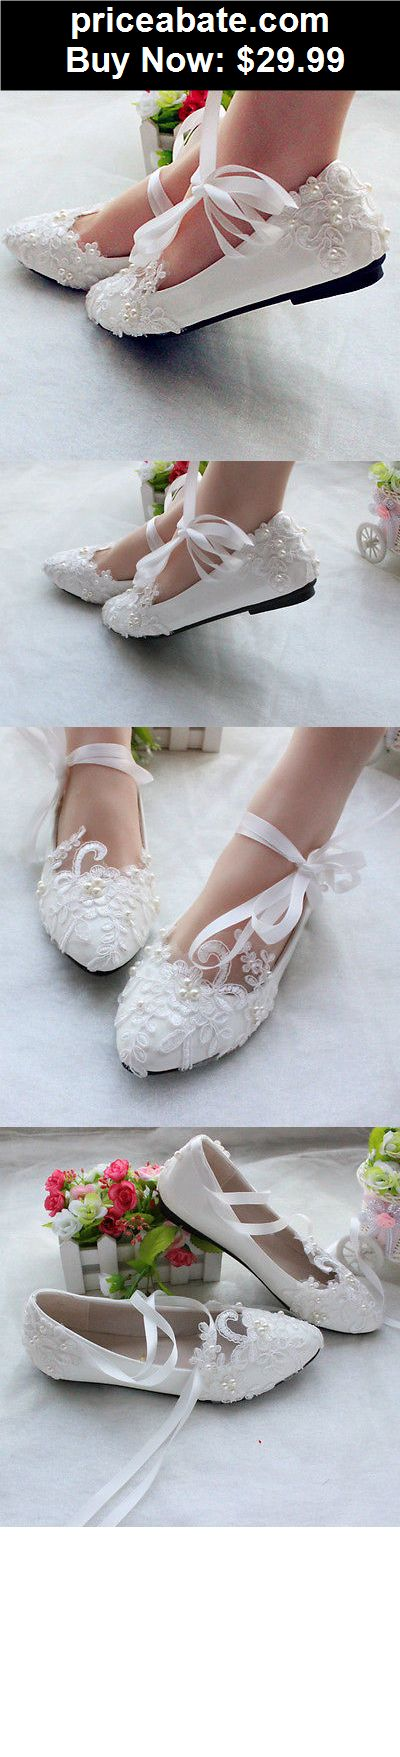 Wedding-Shoes-And-Bridal-Shoes: White lace stain strap Wedding shoes pearl Bridal flats low high heels size 6-10 - BUY IT NOW ONLY $29.99